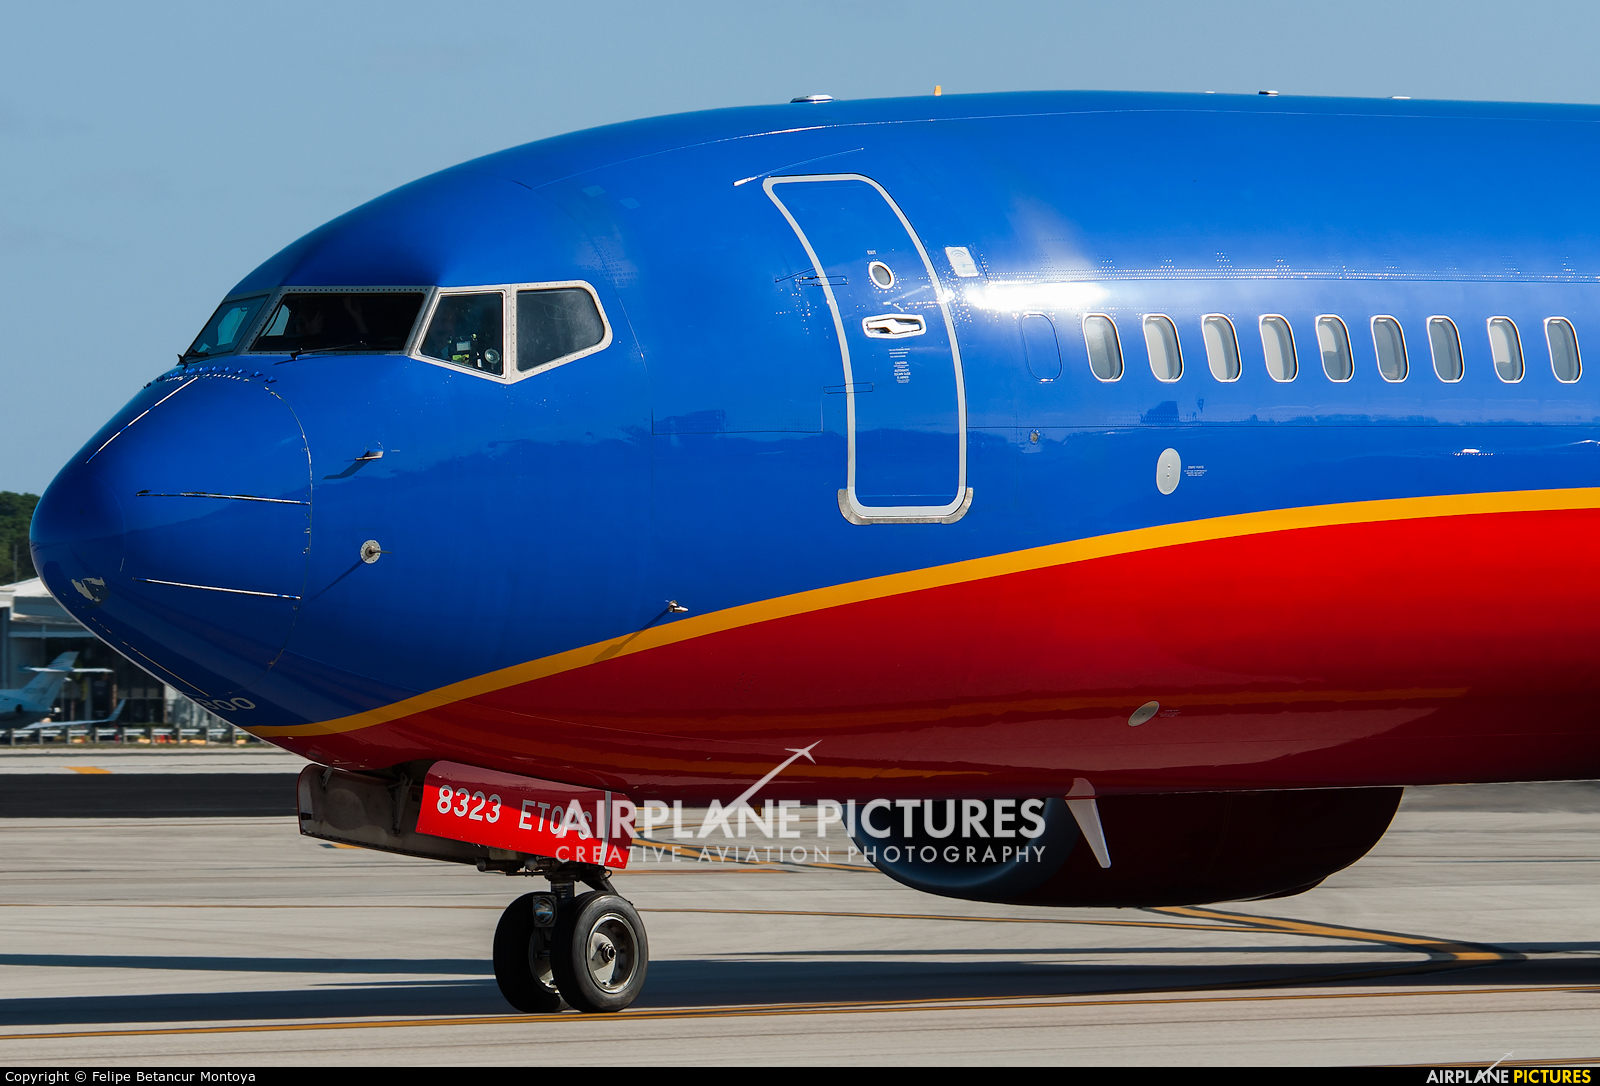 Southwest Airlines N8323C aircraft at Fort Lauderdale - Hollywood Intl